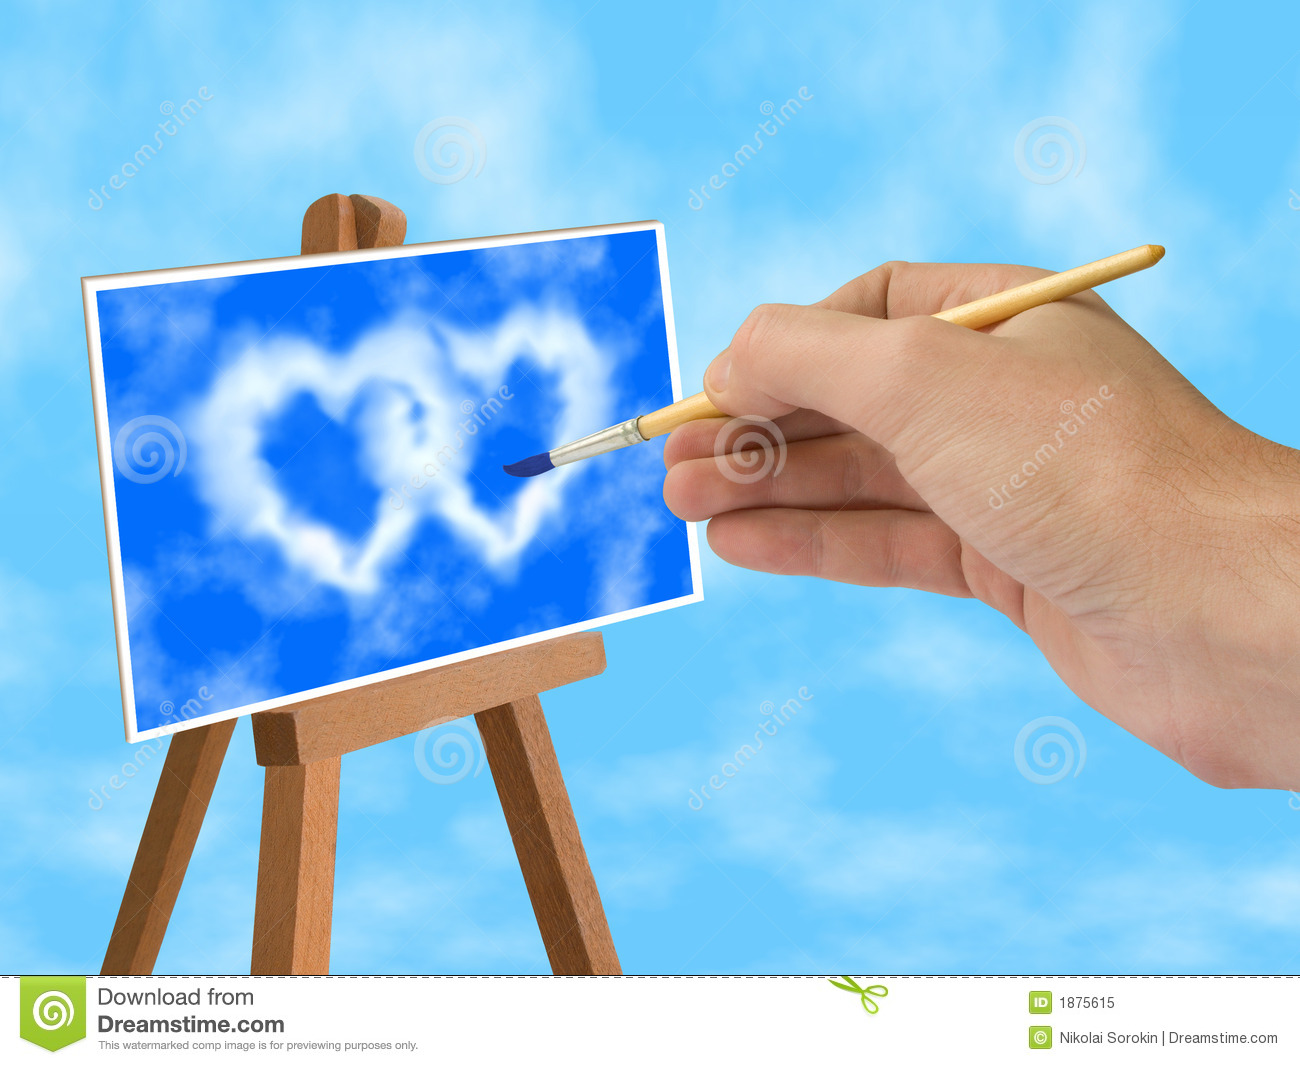 Related to Heart Stock Photos Images, Royalty Free Heart Images And